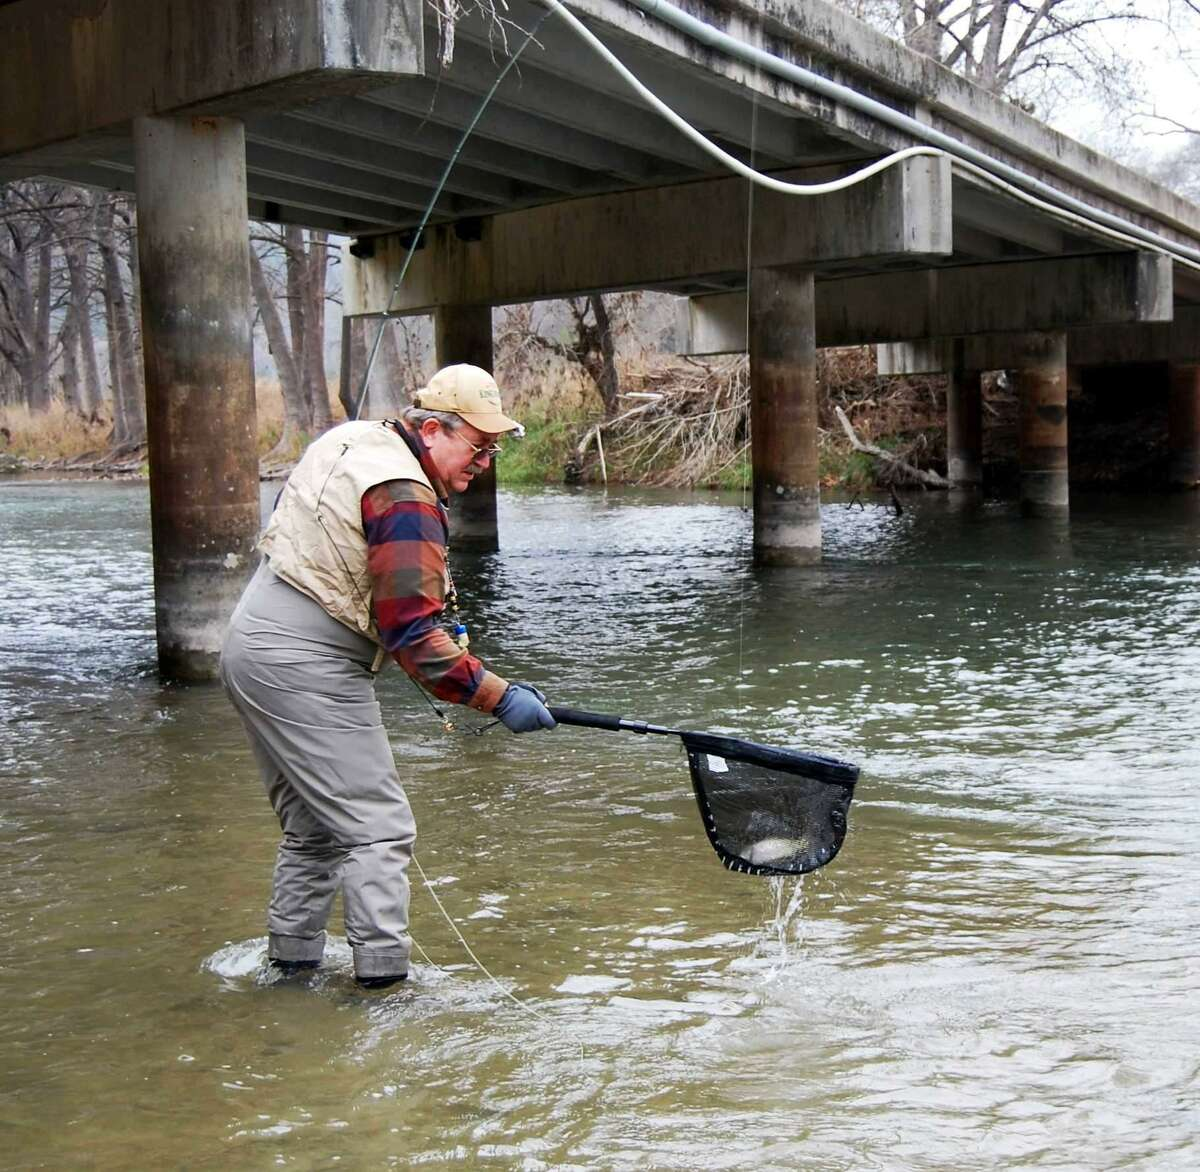 Dan Moseley of San Antonio nets a rainbow trout he caught while fishing in the Guadalupe River as one of the fly fishing anglers who travel from throughout the world in order to take advantage of the fishery to be highlighted at the Guadalupe River Chapter of Trout Unlimited's annual TroutFest that runs from today through Sunday.